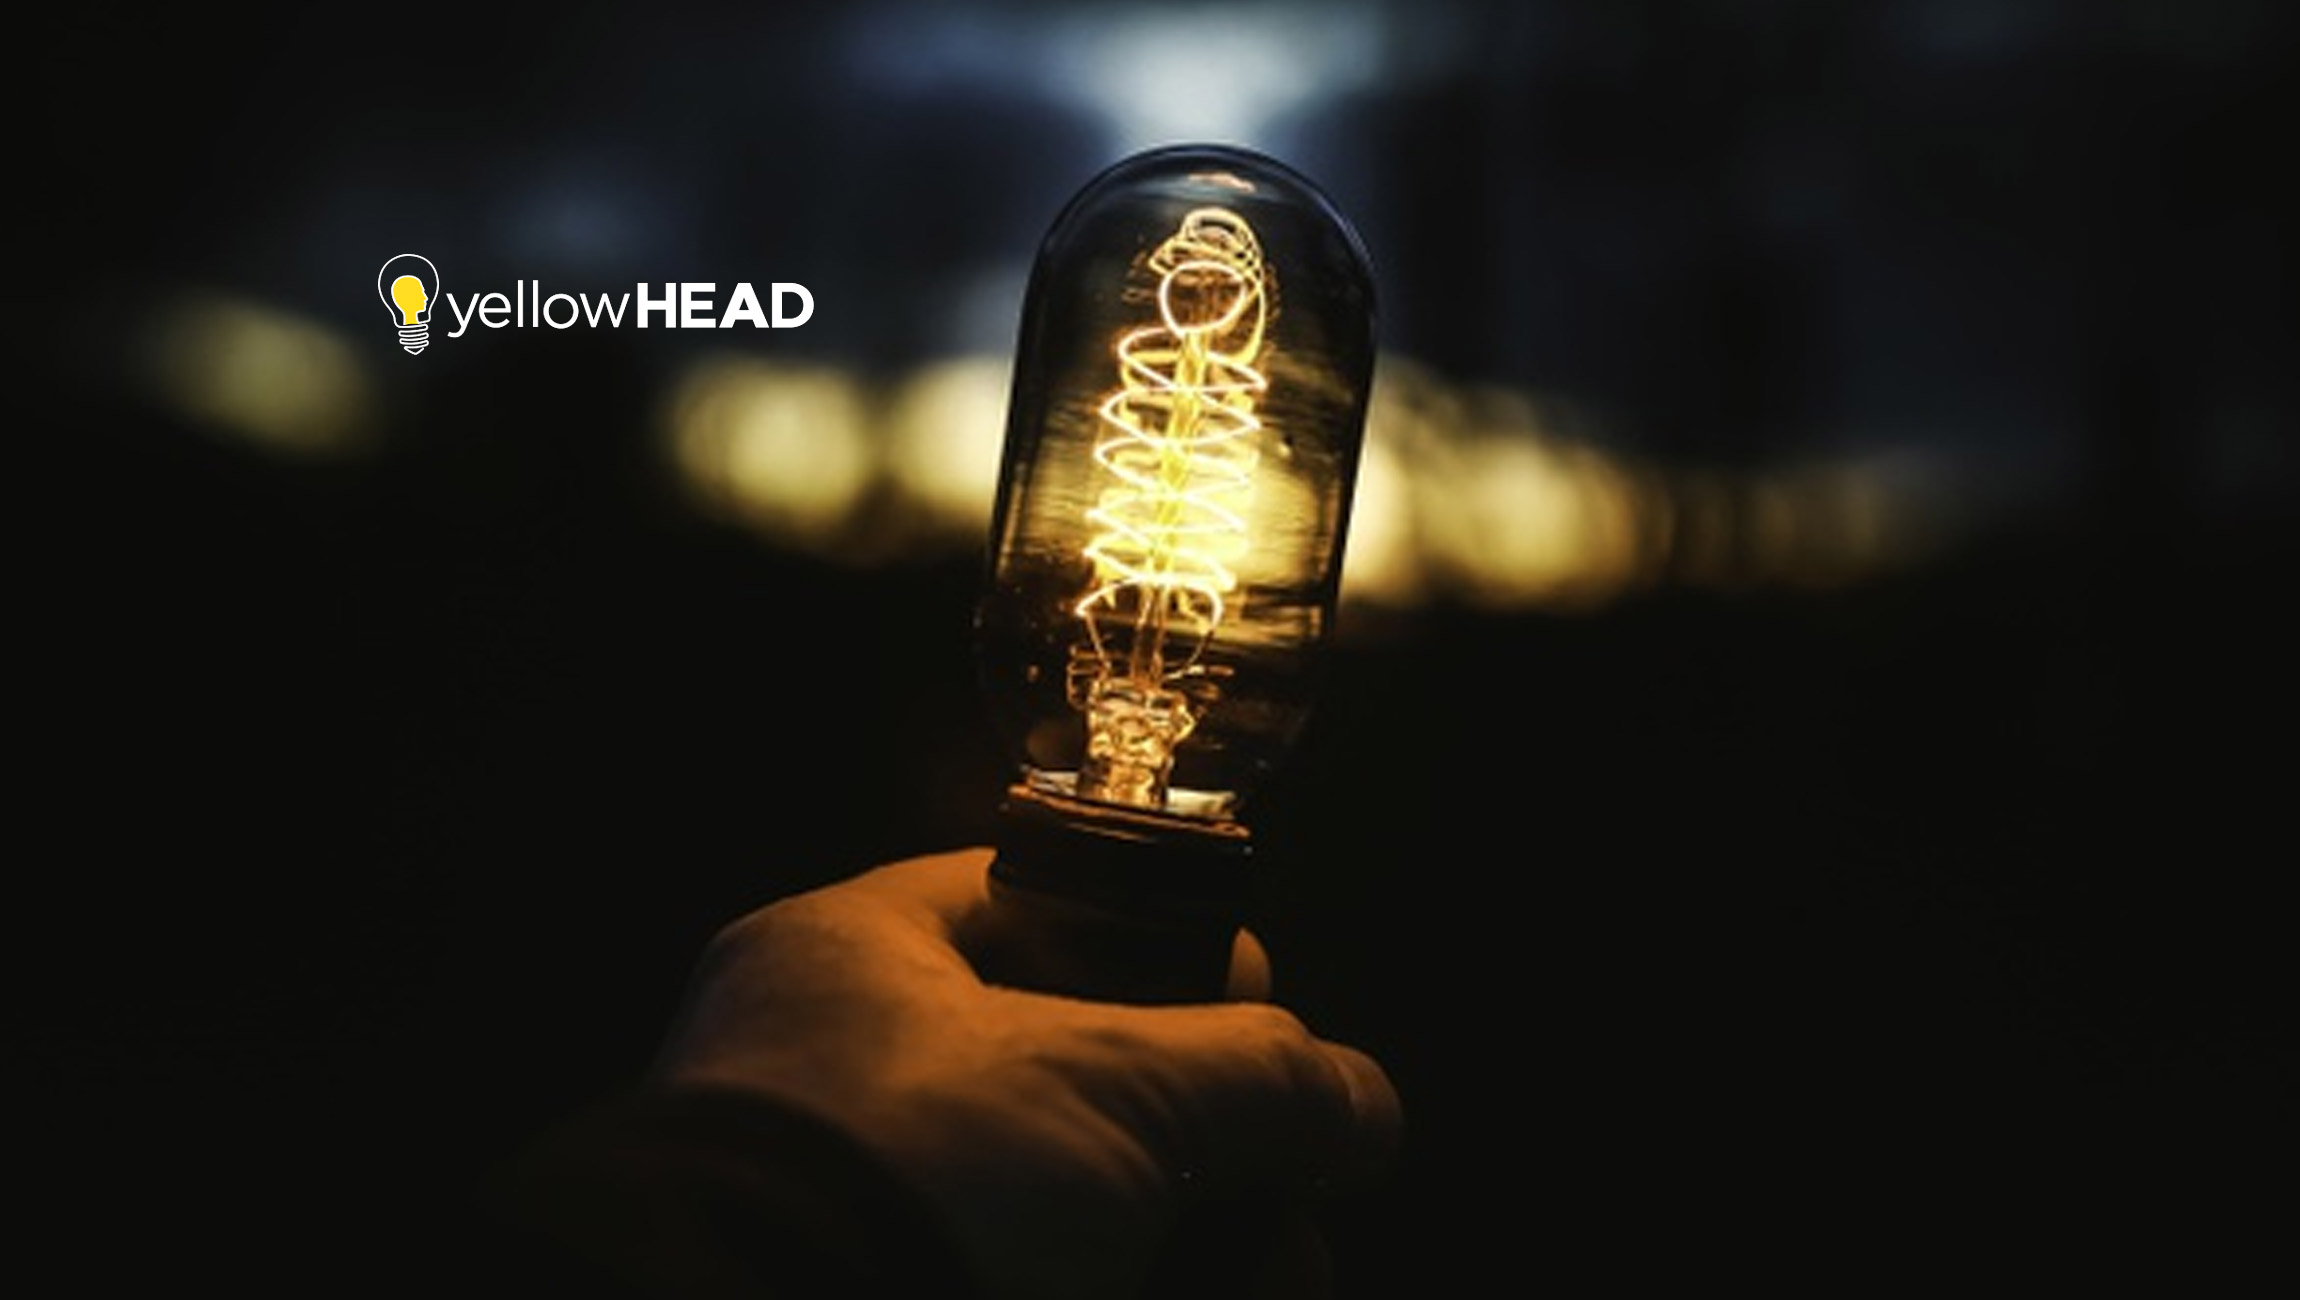 yellowHEAD Earns a Facebook Marketing Partner Creative Badge for Its In-House Expertise and Proprietary Creative Technology